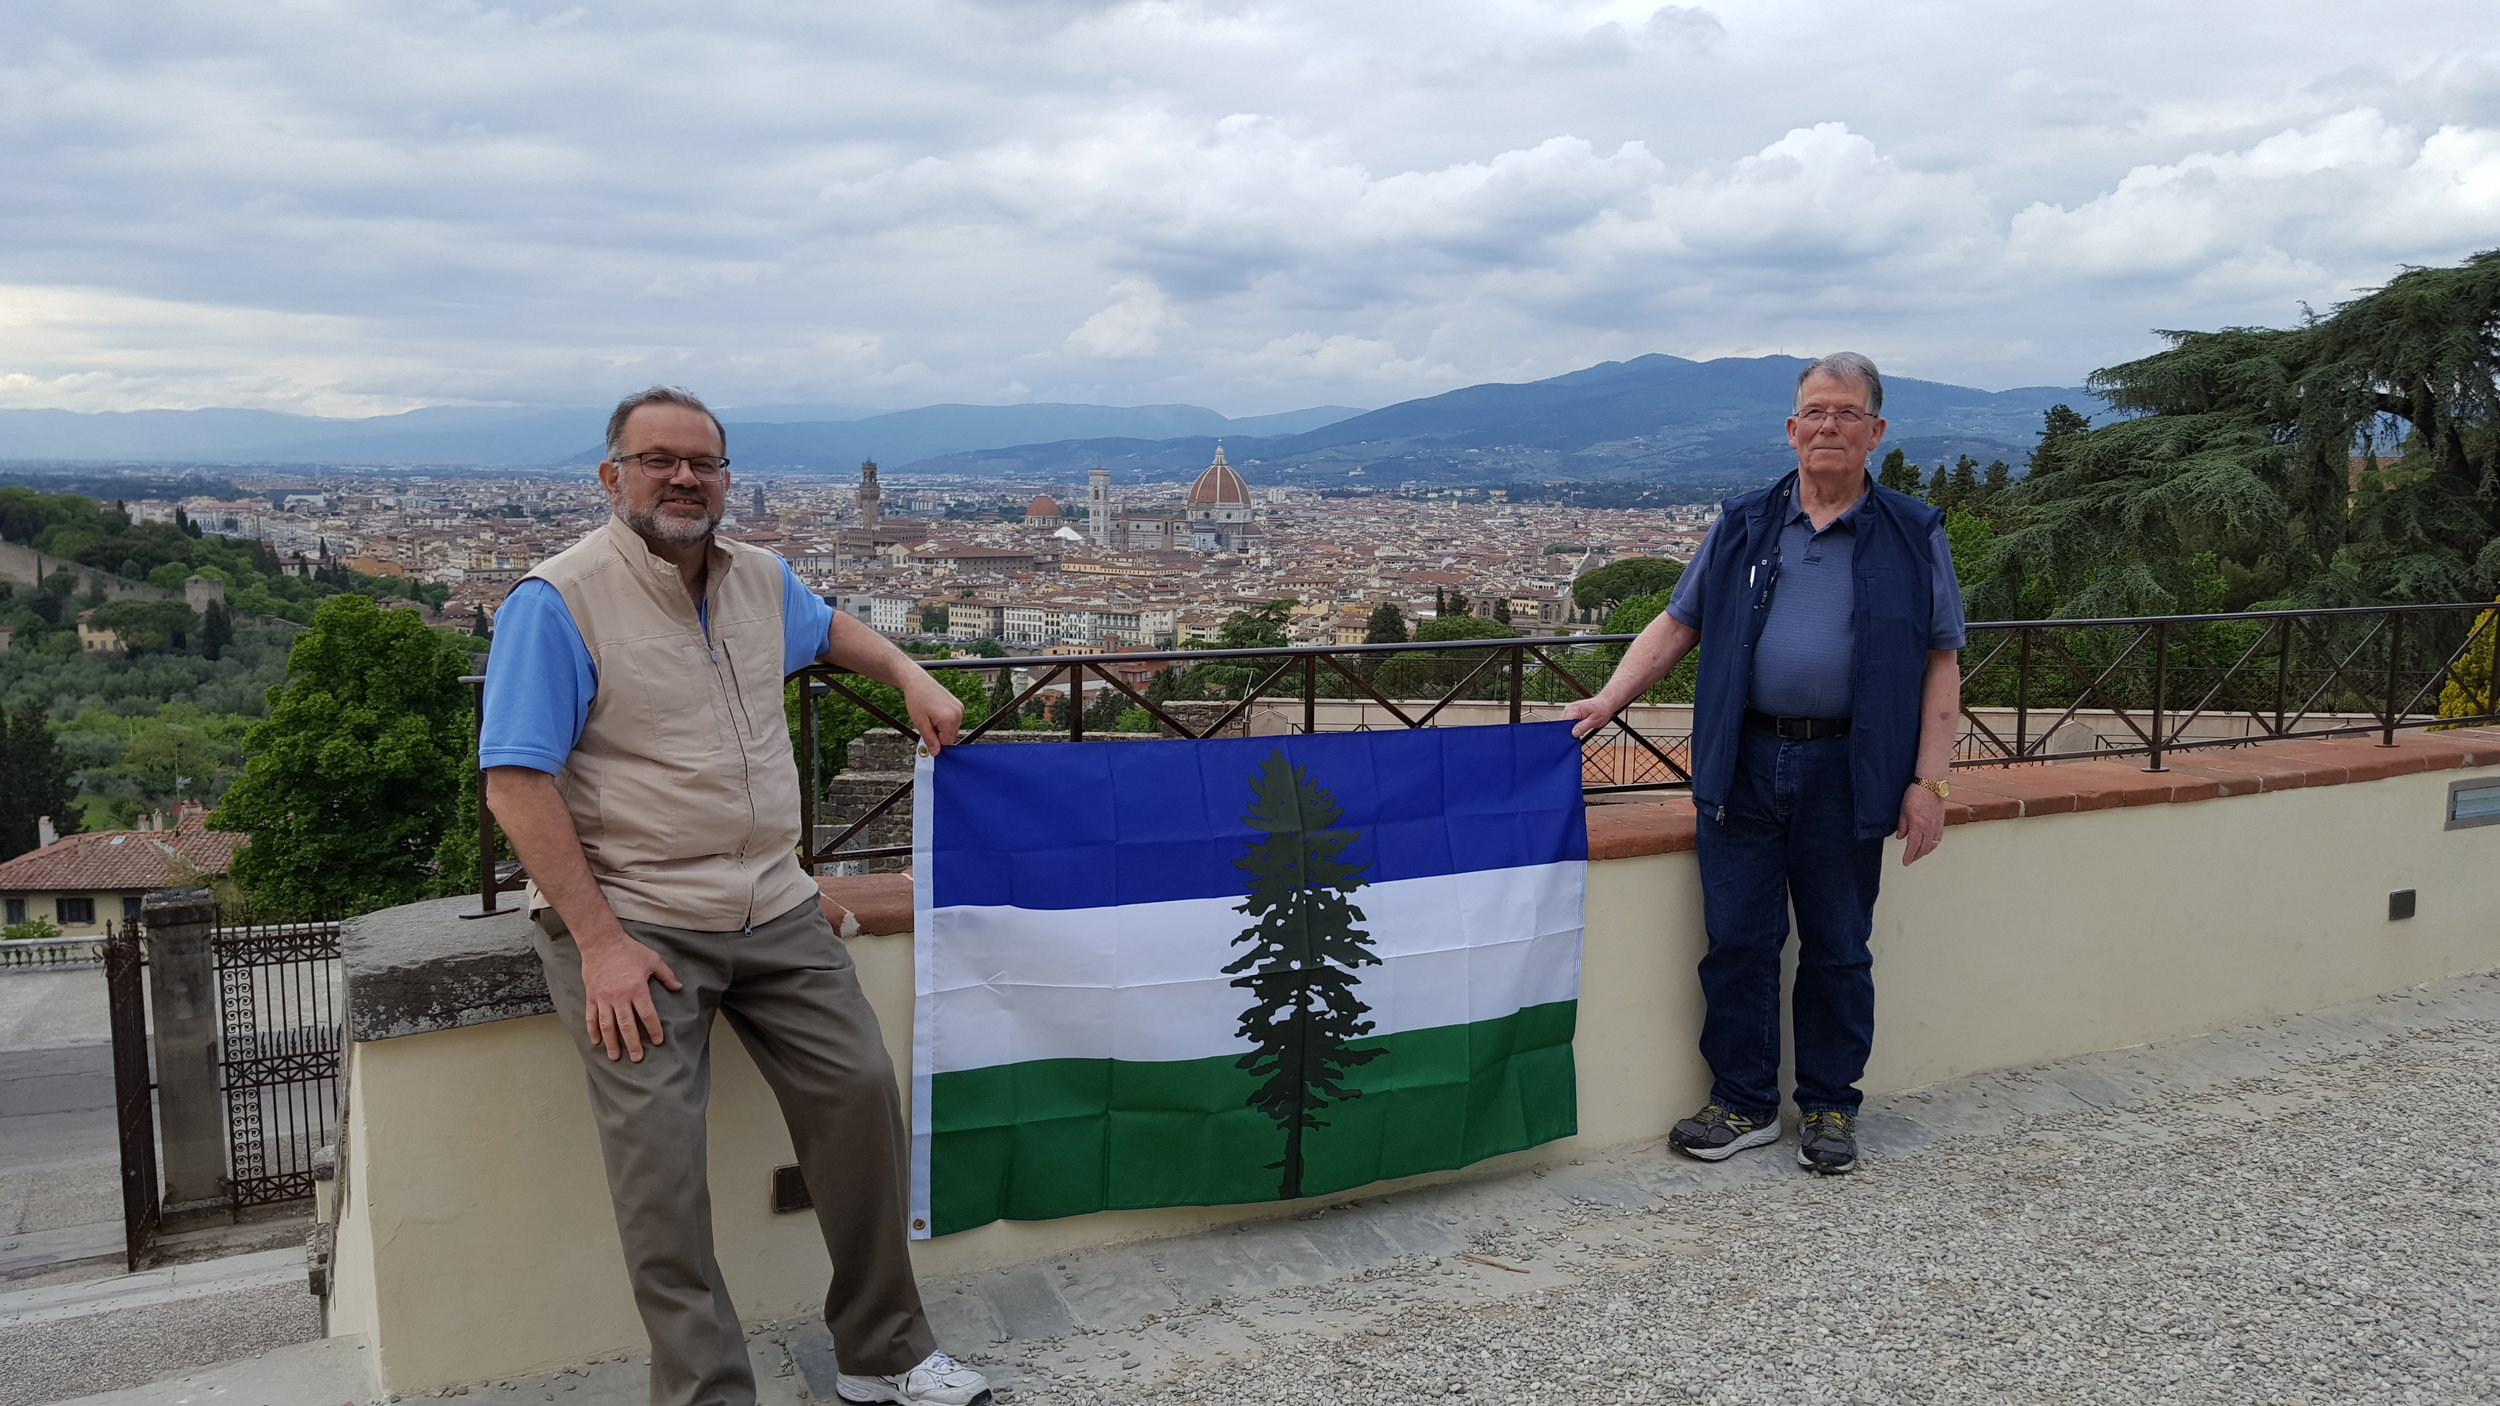 Joel Selling & Crew celebrating Cascadia all the way from Florence, Italy